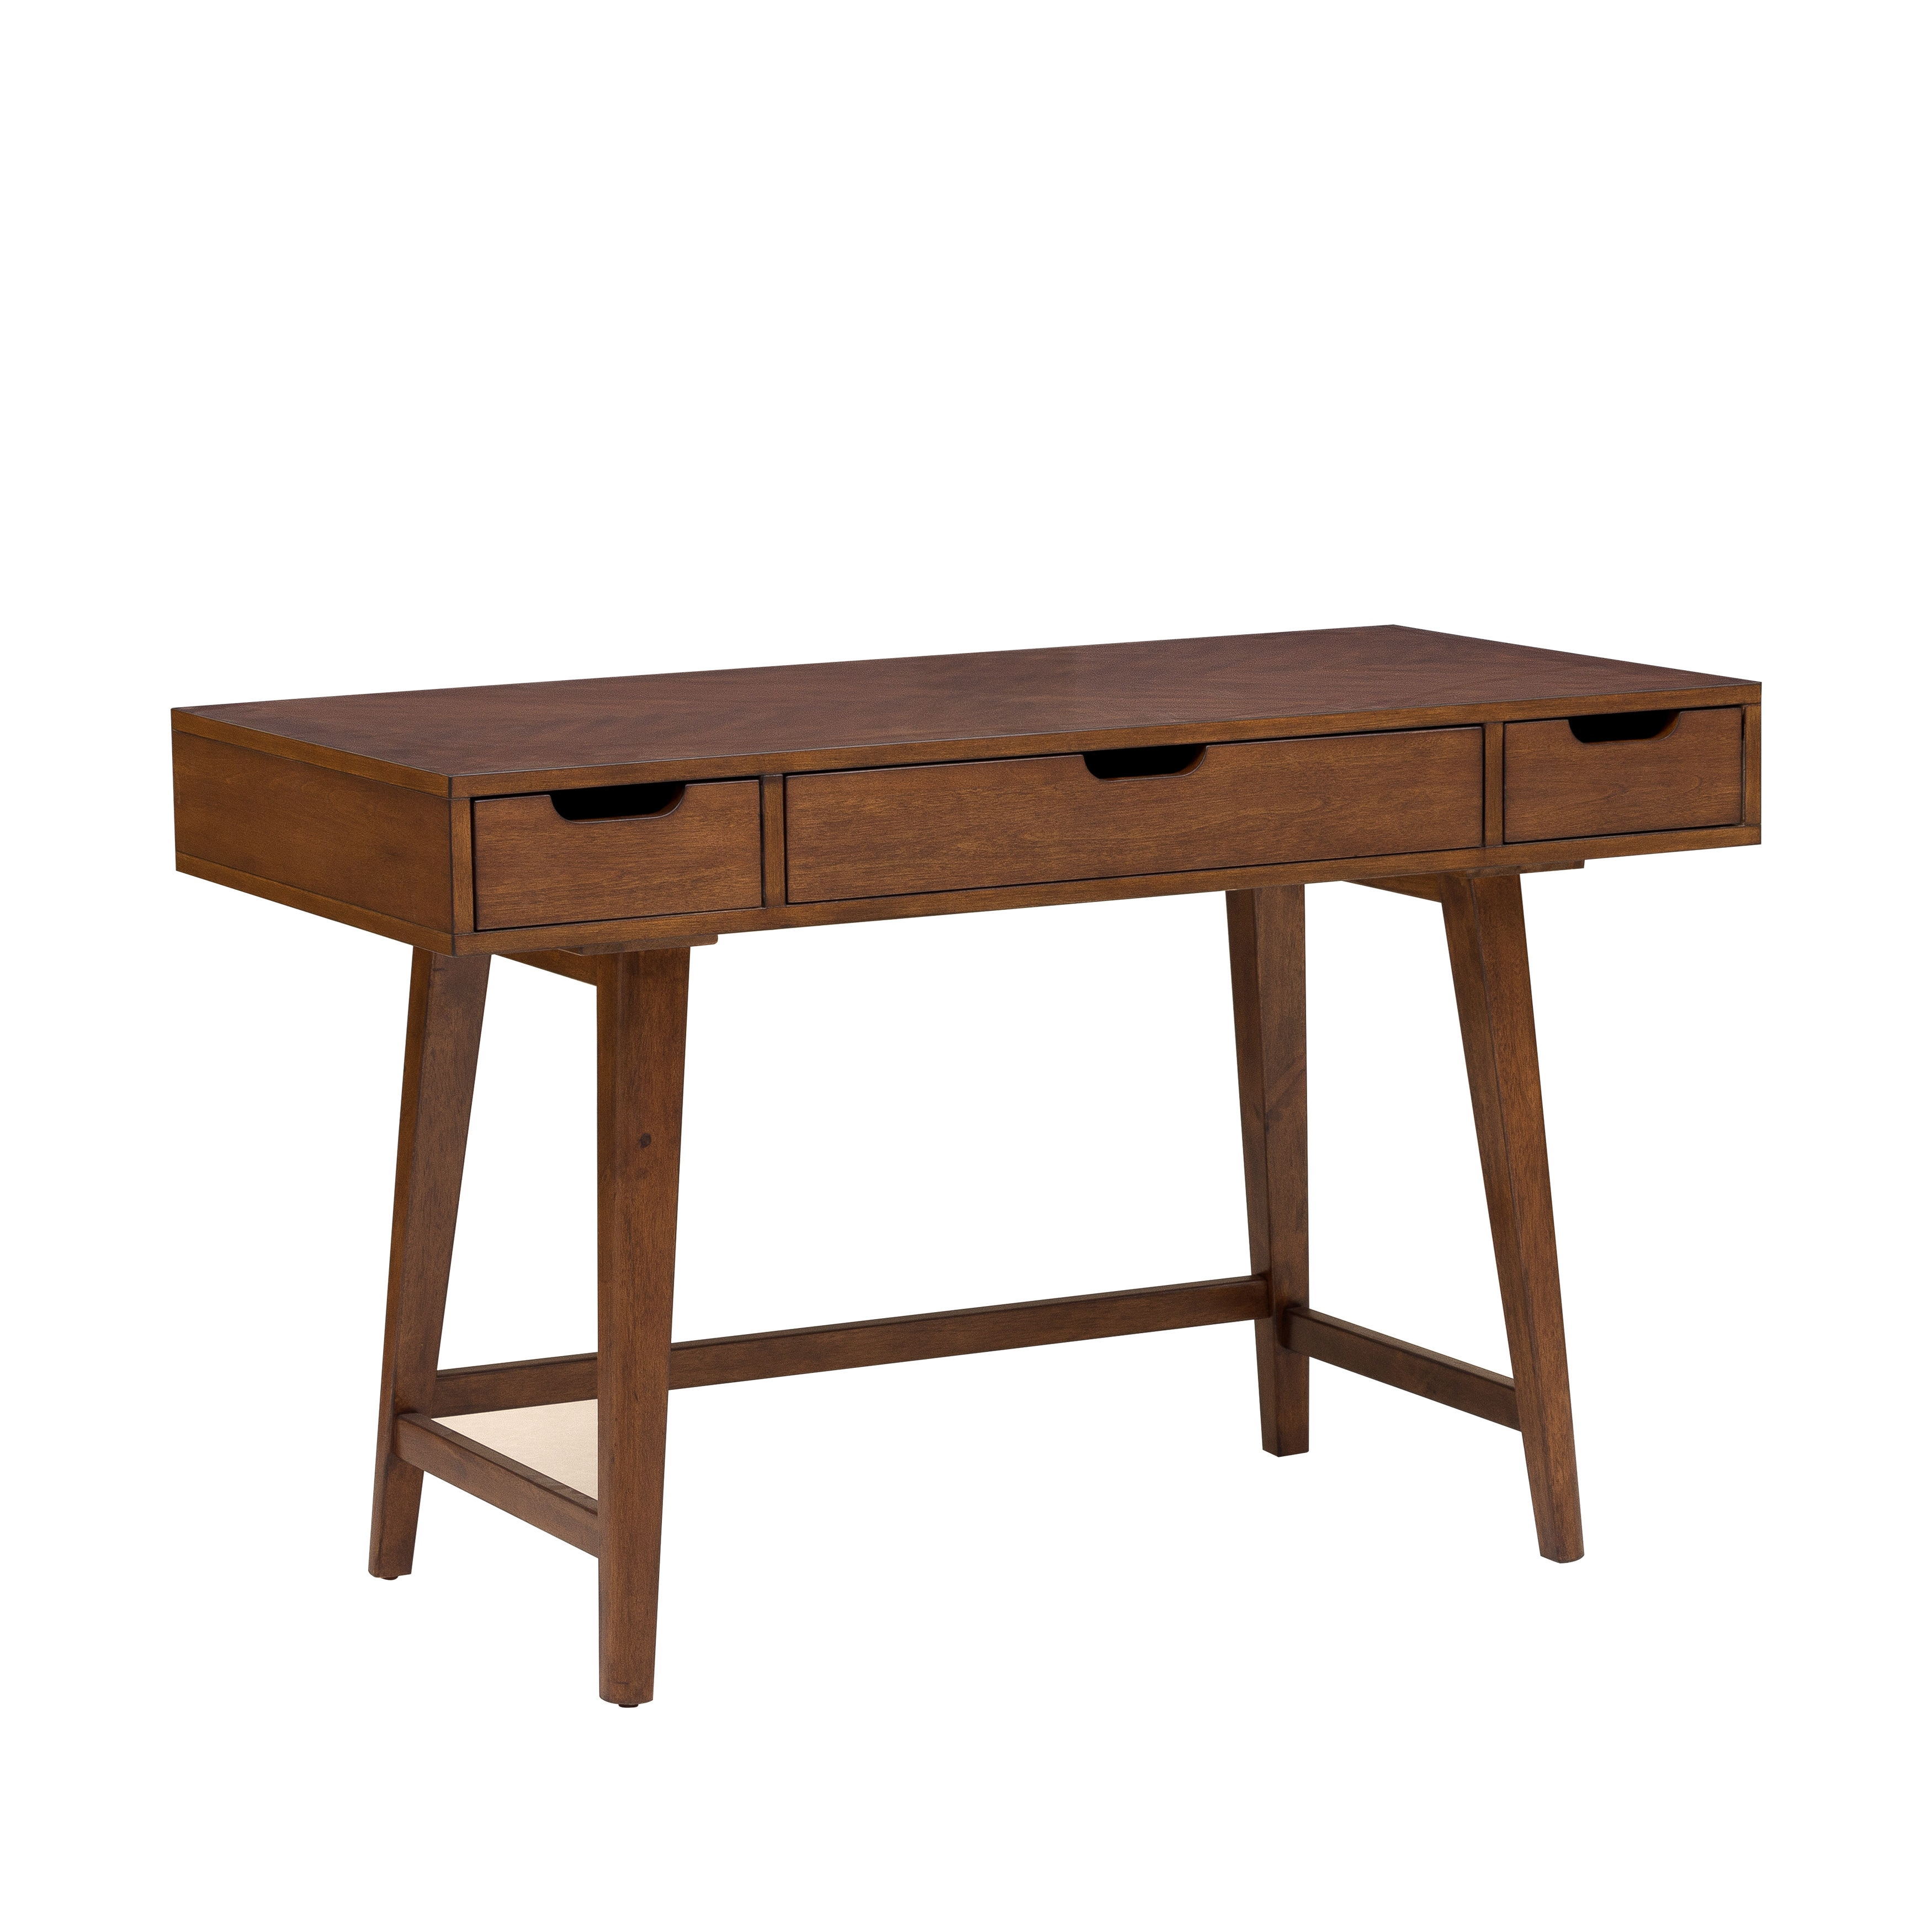 Shop mid century modern light walnut finished writing desk on sale free shipping today overstock com 13449492